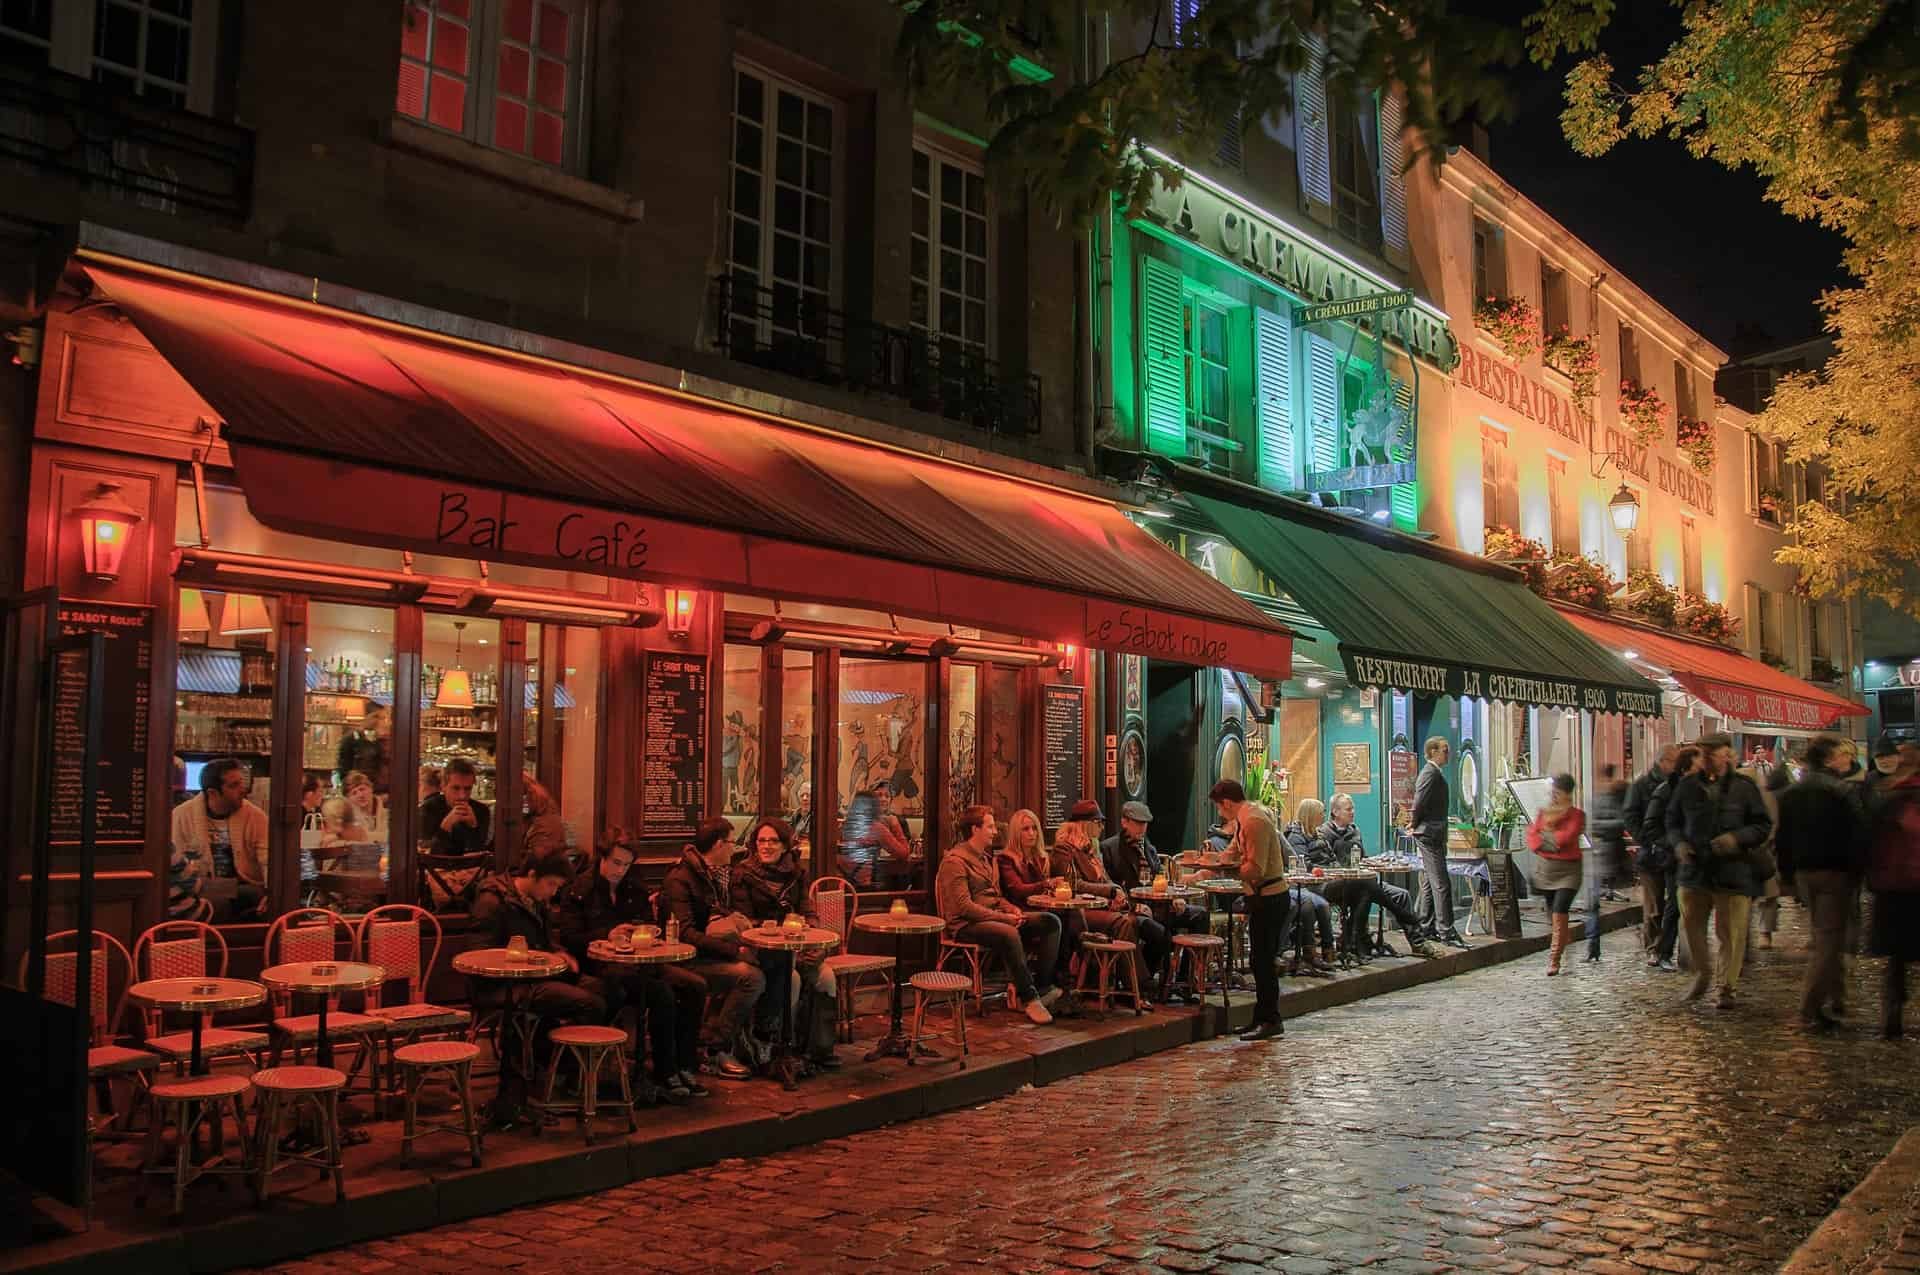 3 days in Paris Itinerary: The Rue Mouffetard should be on your three days in Paris agenda - this cobbled stone street is a top item on what to see in PAris in 3 days.